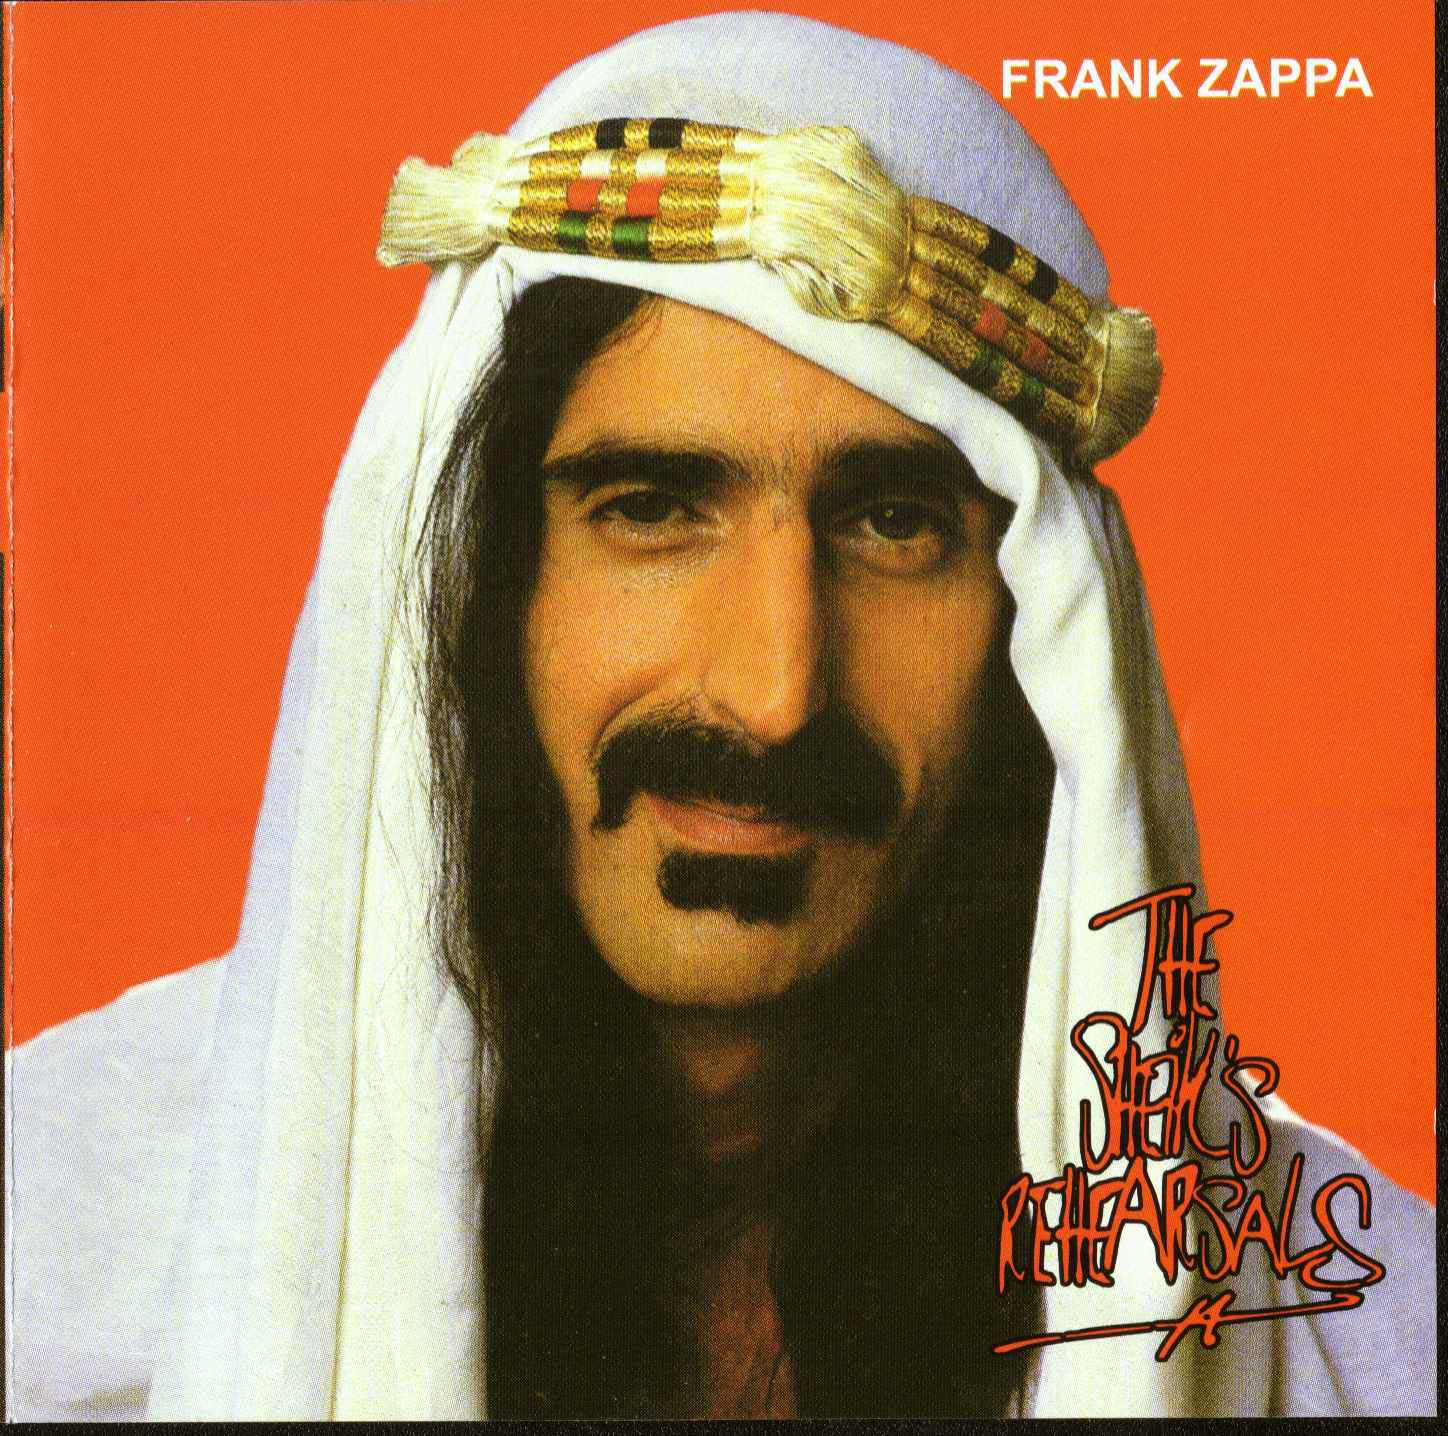 thanks frank zappa and pauline butcher aleister crowley